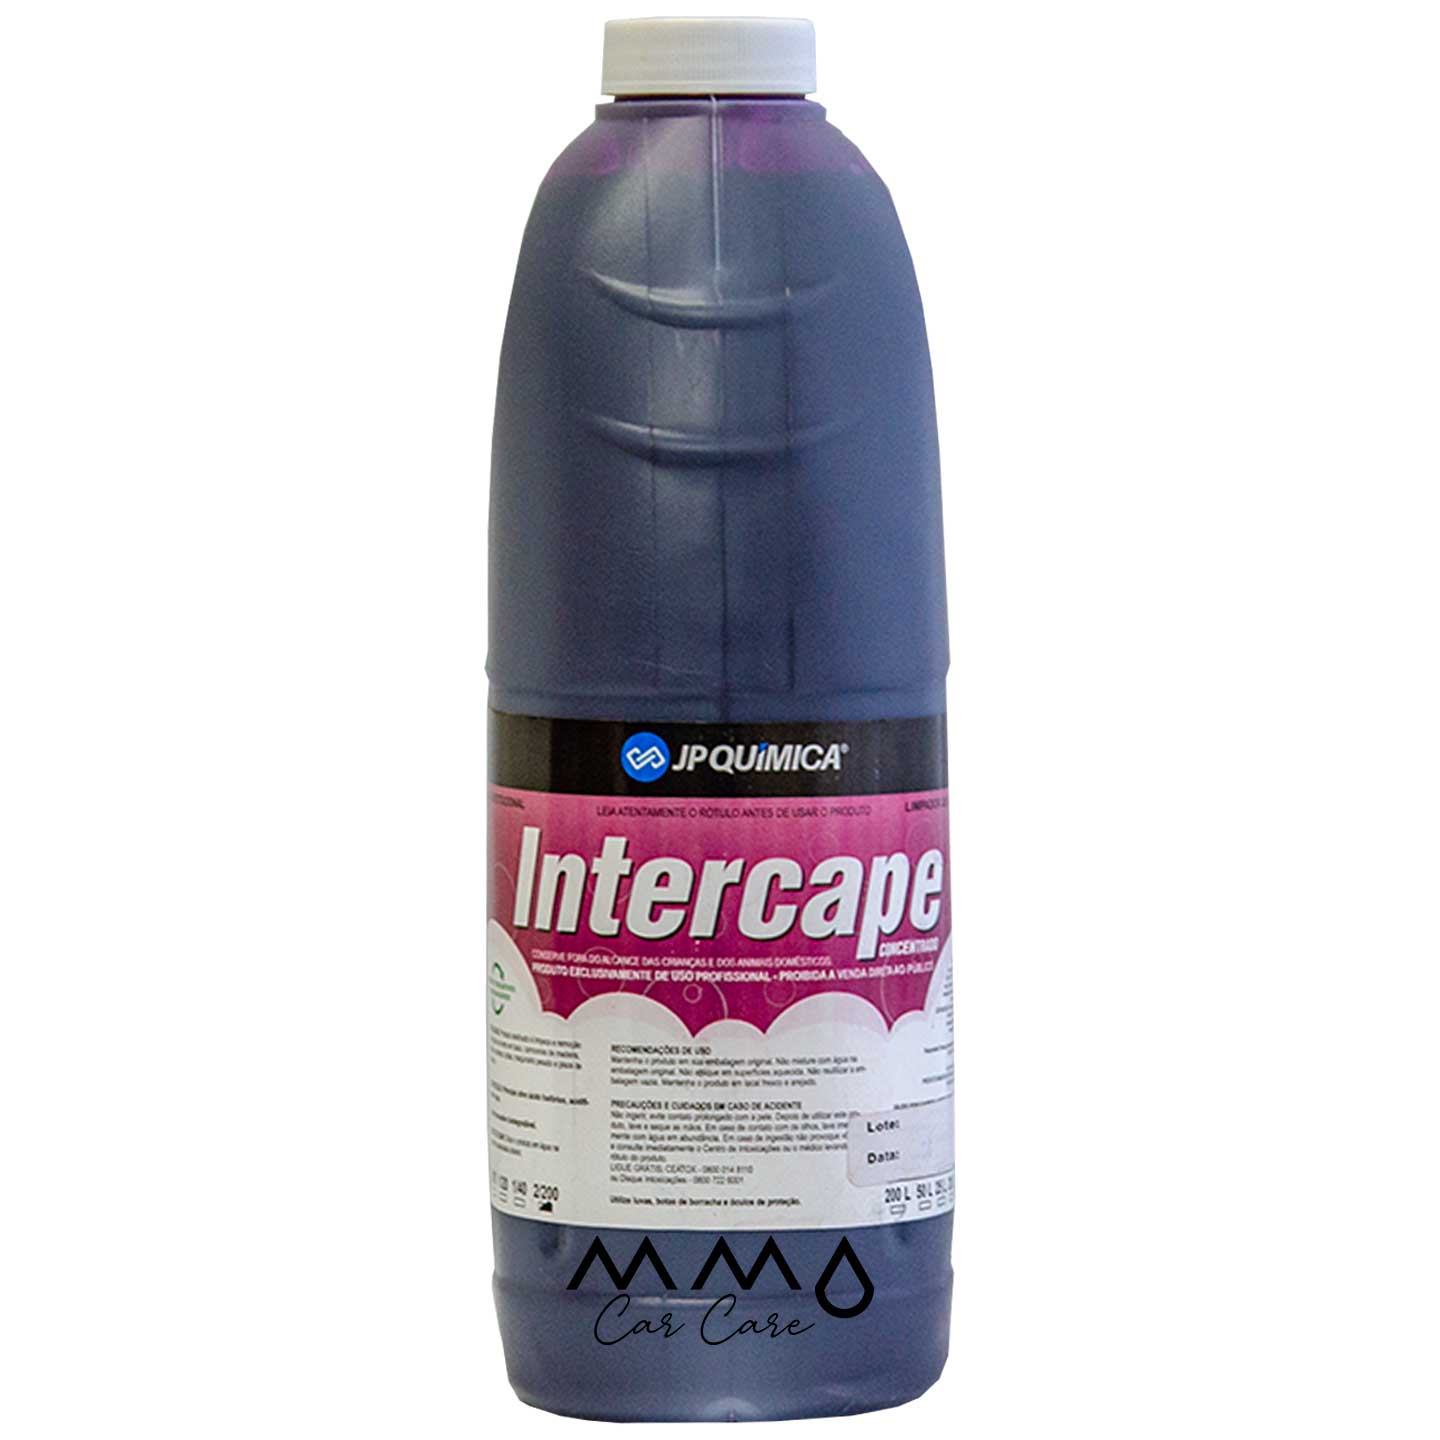 INTERCAPE CONCENTRADO 2/200 - 2 L